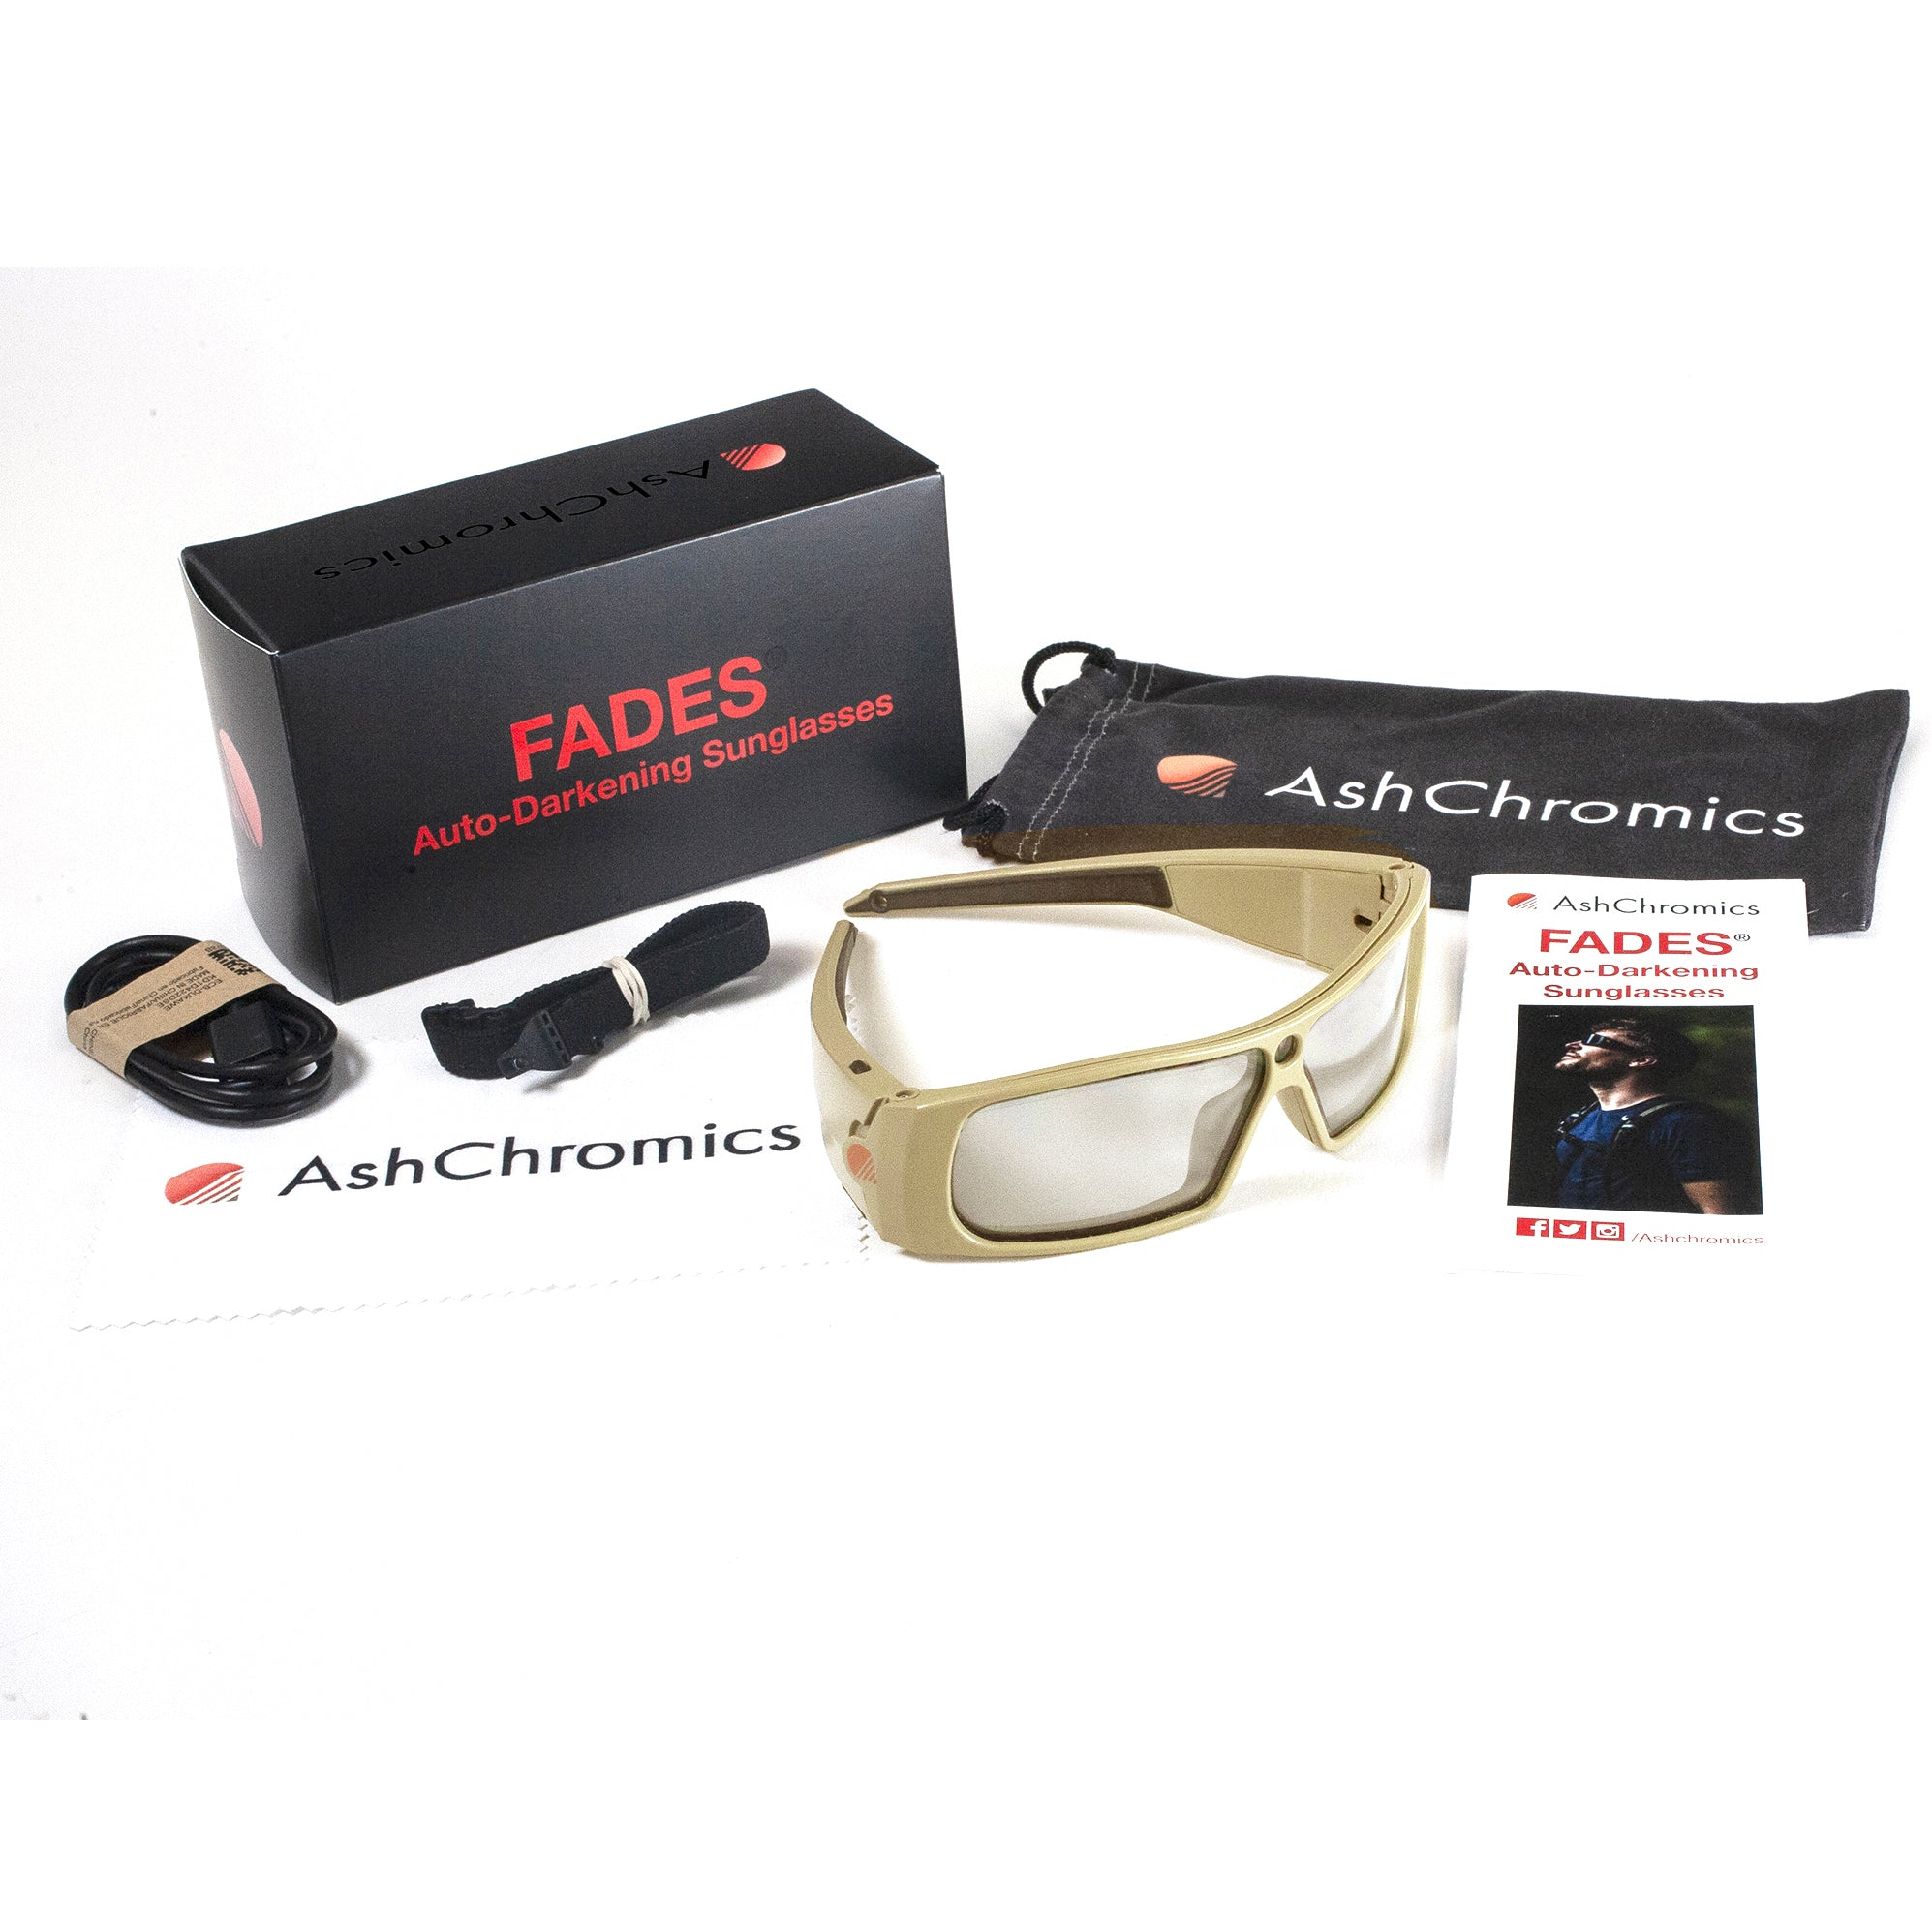 Fades Auto Darkening Motorcycle Sunglasses Package